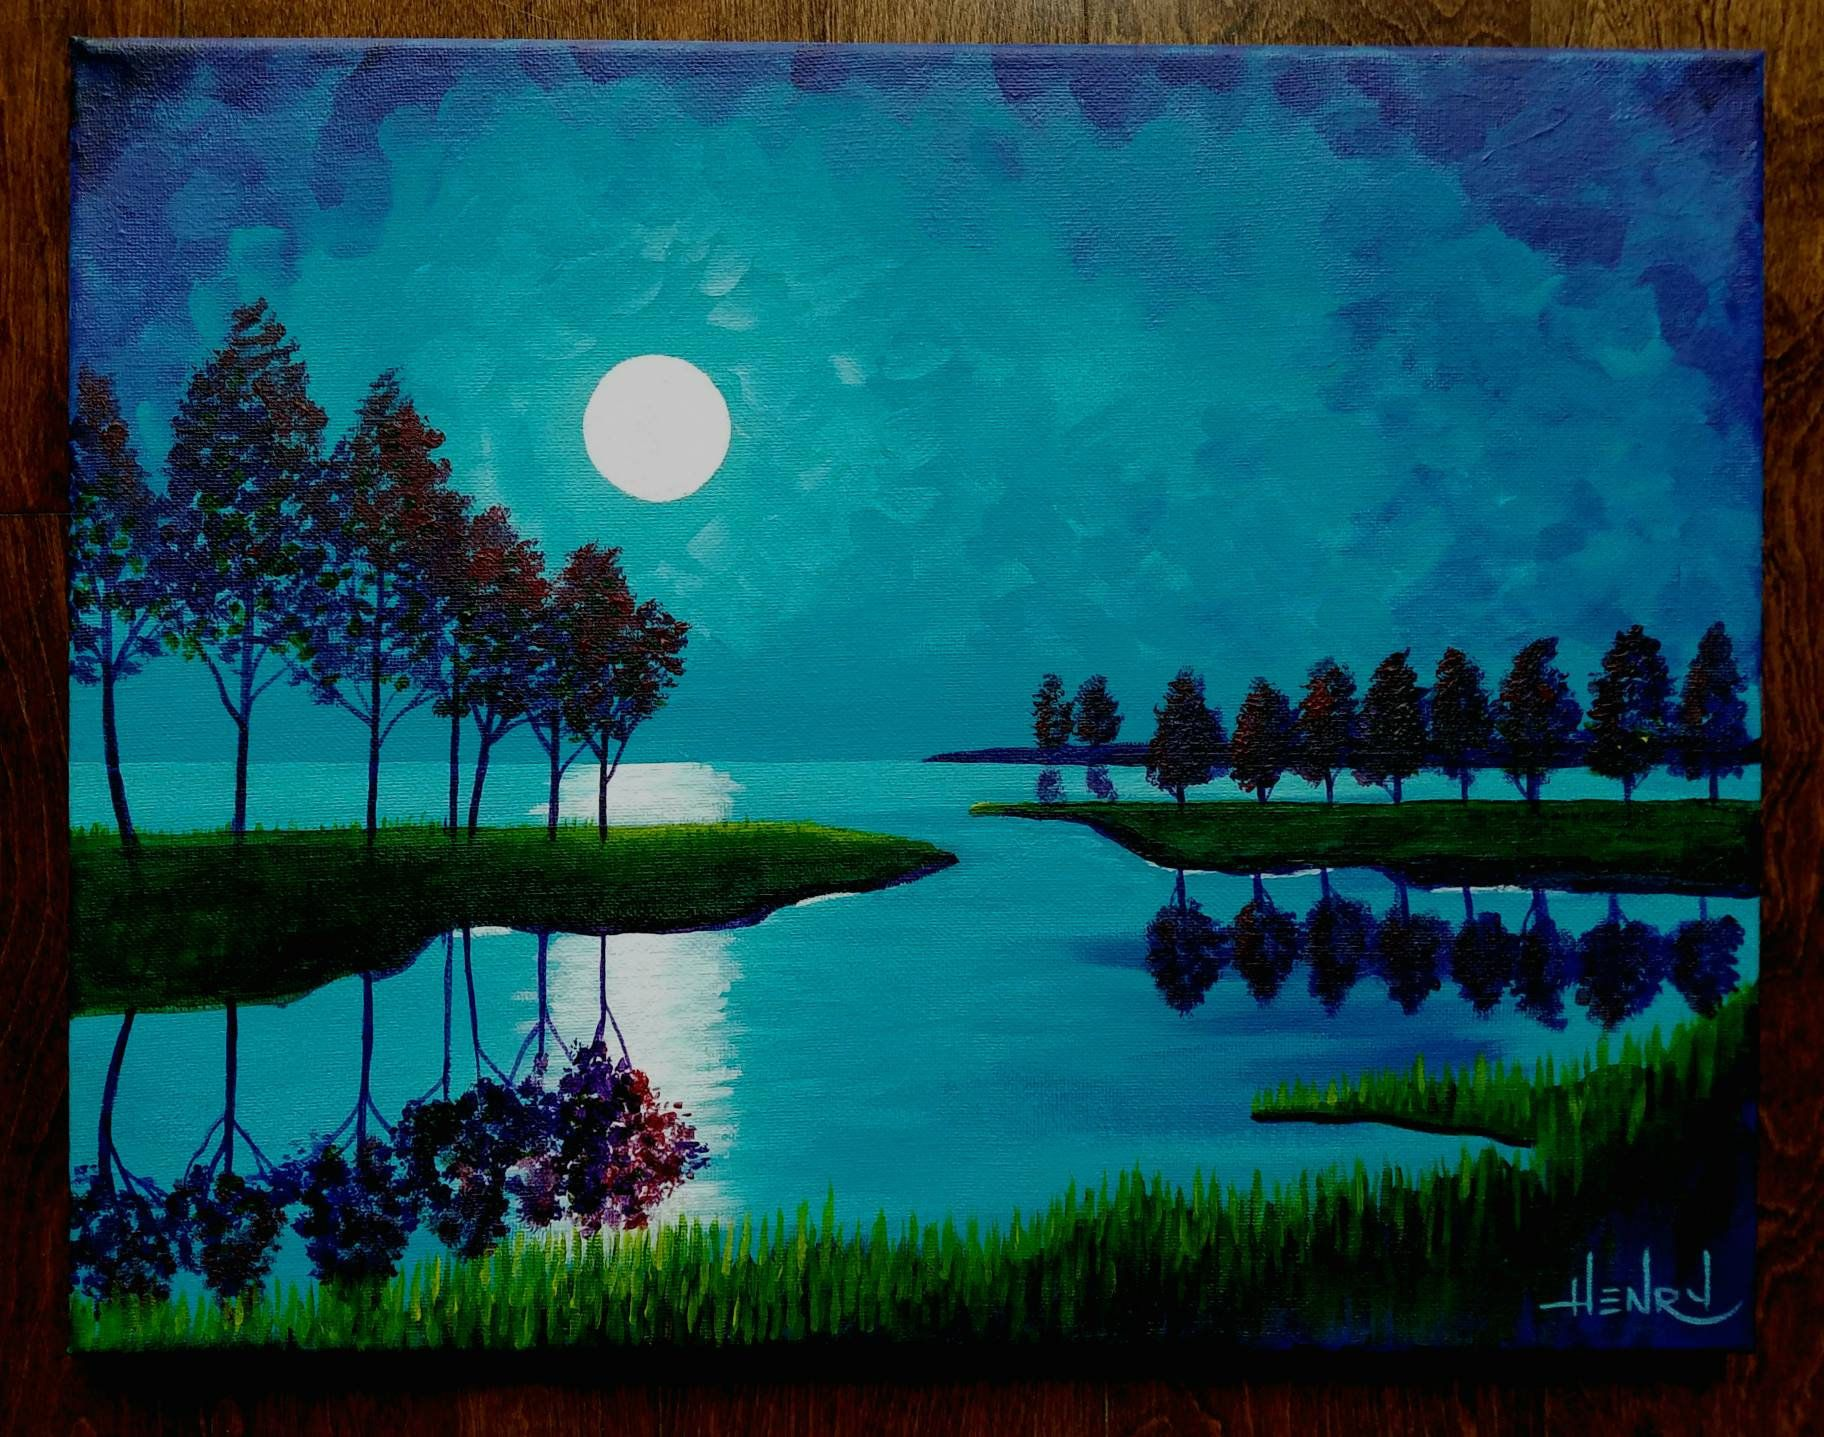 Summer Night Forest Lake Landscape Night Painting By Pamela Henry Turquoise Purple Moon Nocturn Wall Decor Home Or Office Art Lake Painting Lake Landscape Night Painting